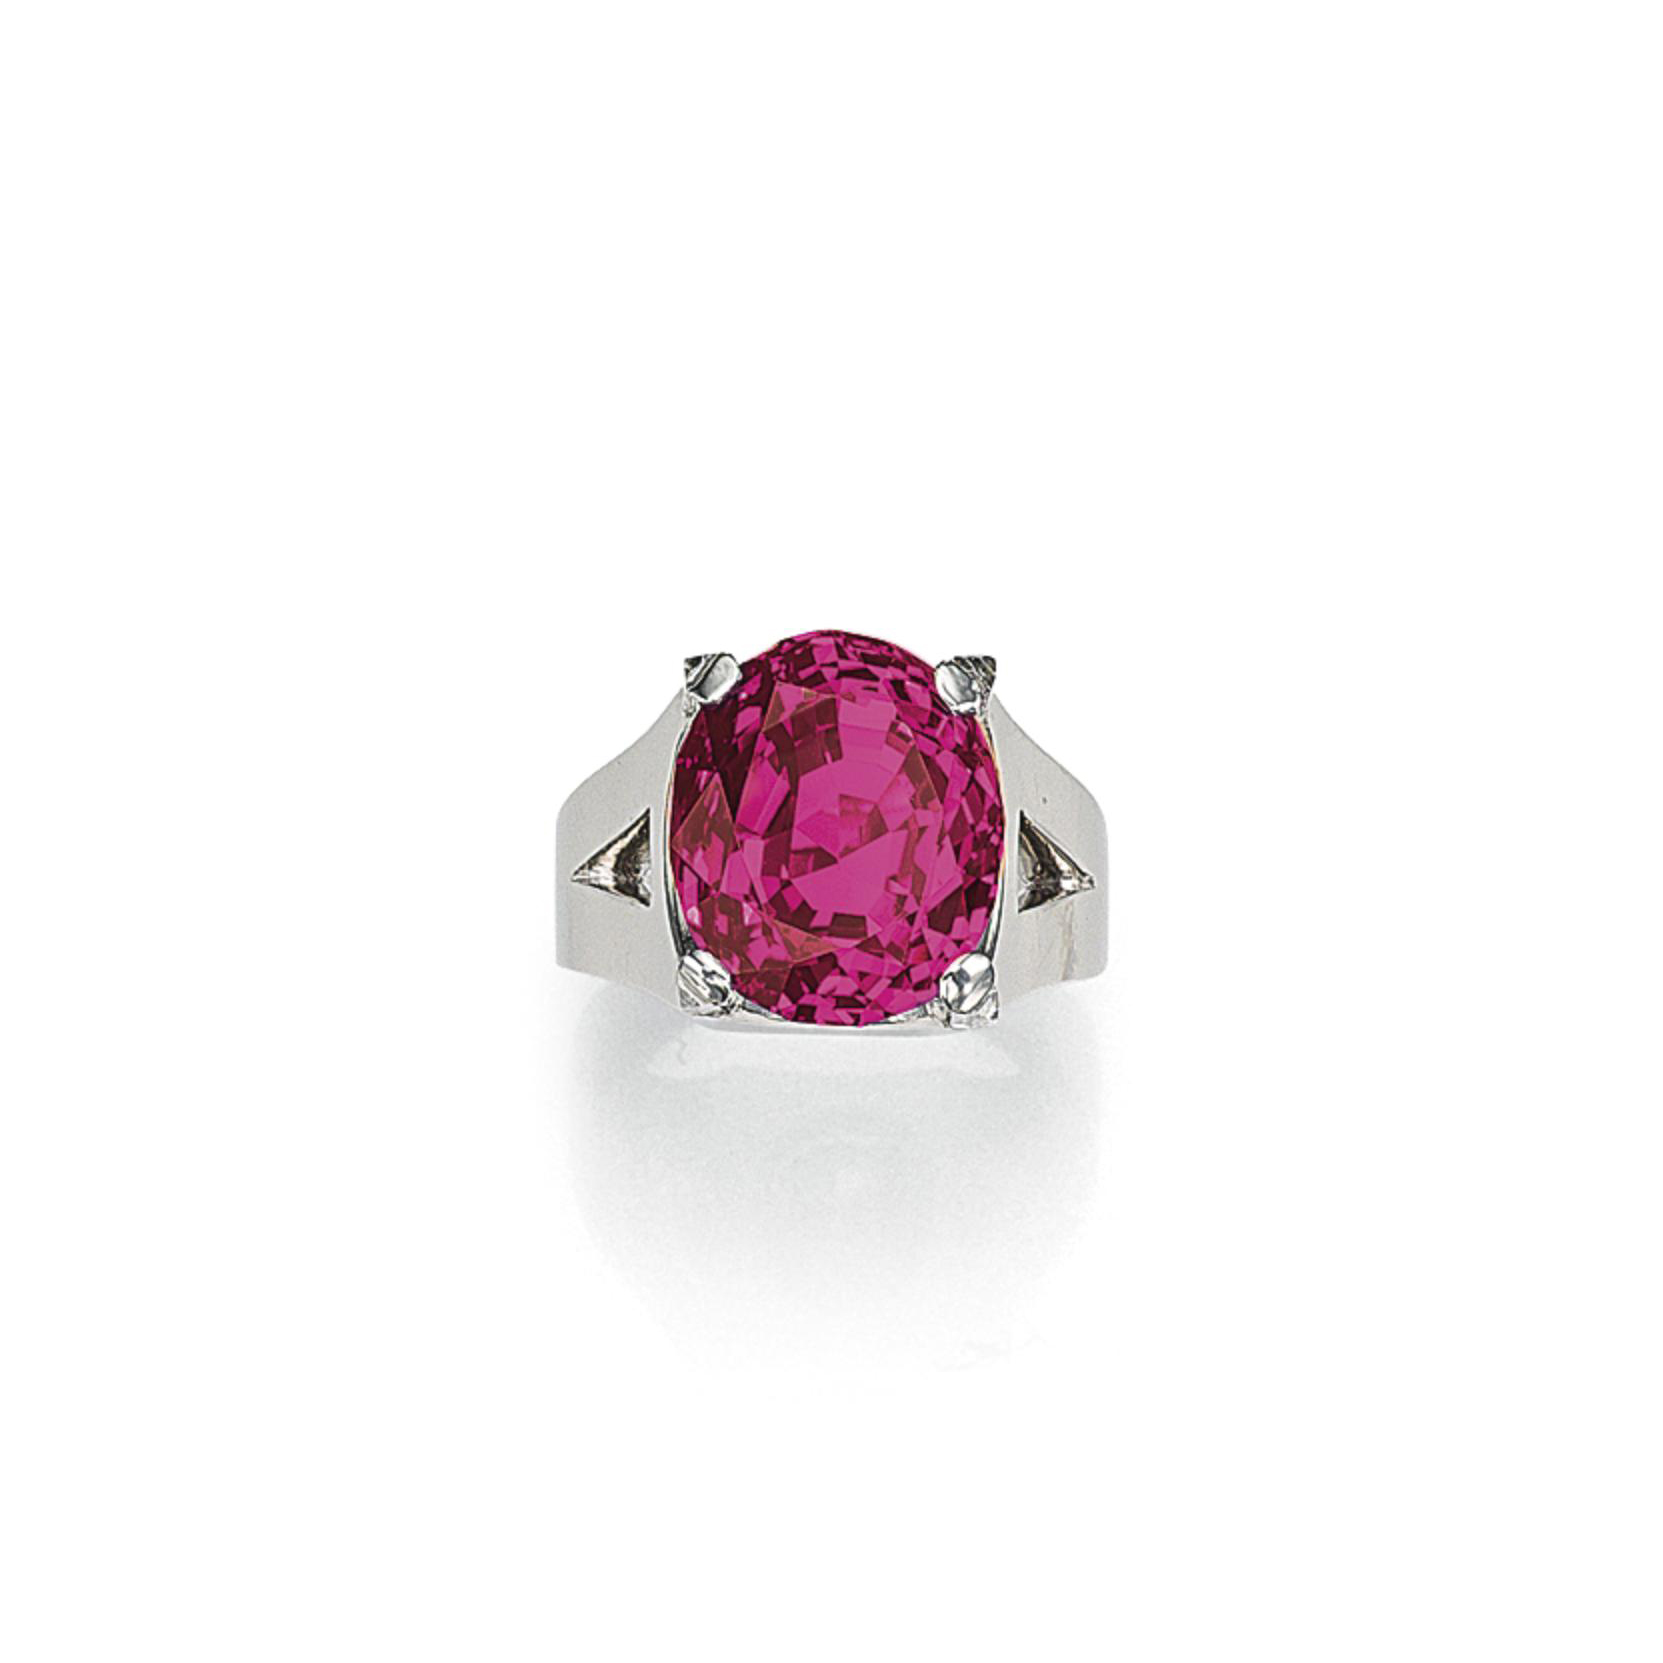 AN EXCEPTIONAL RUBY AND DIAMOND RING, BY CARTIER